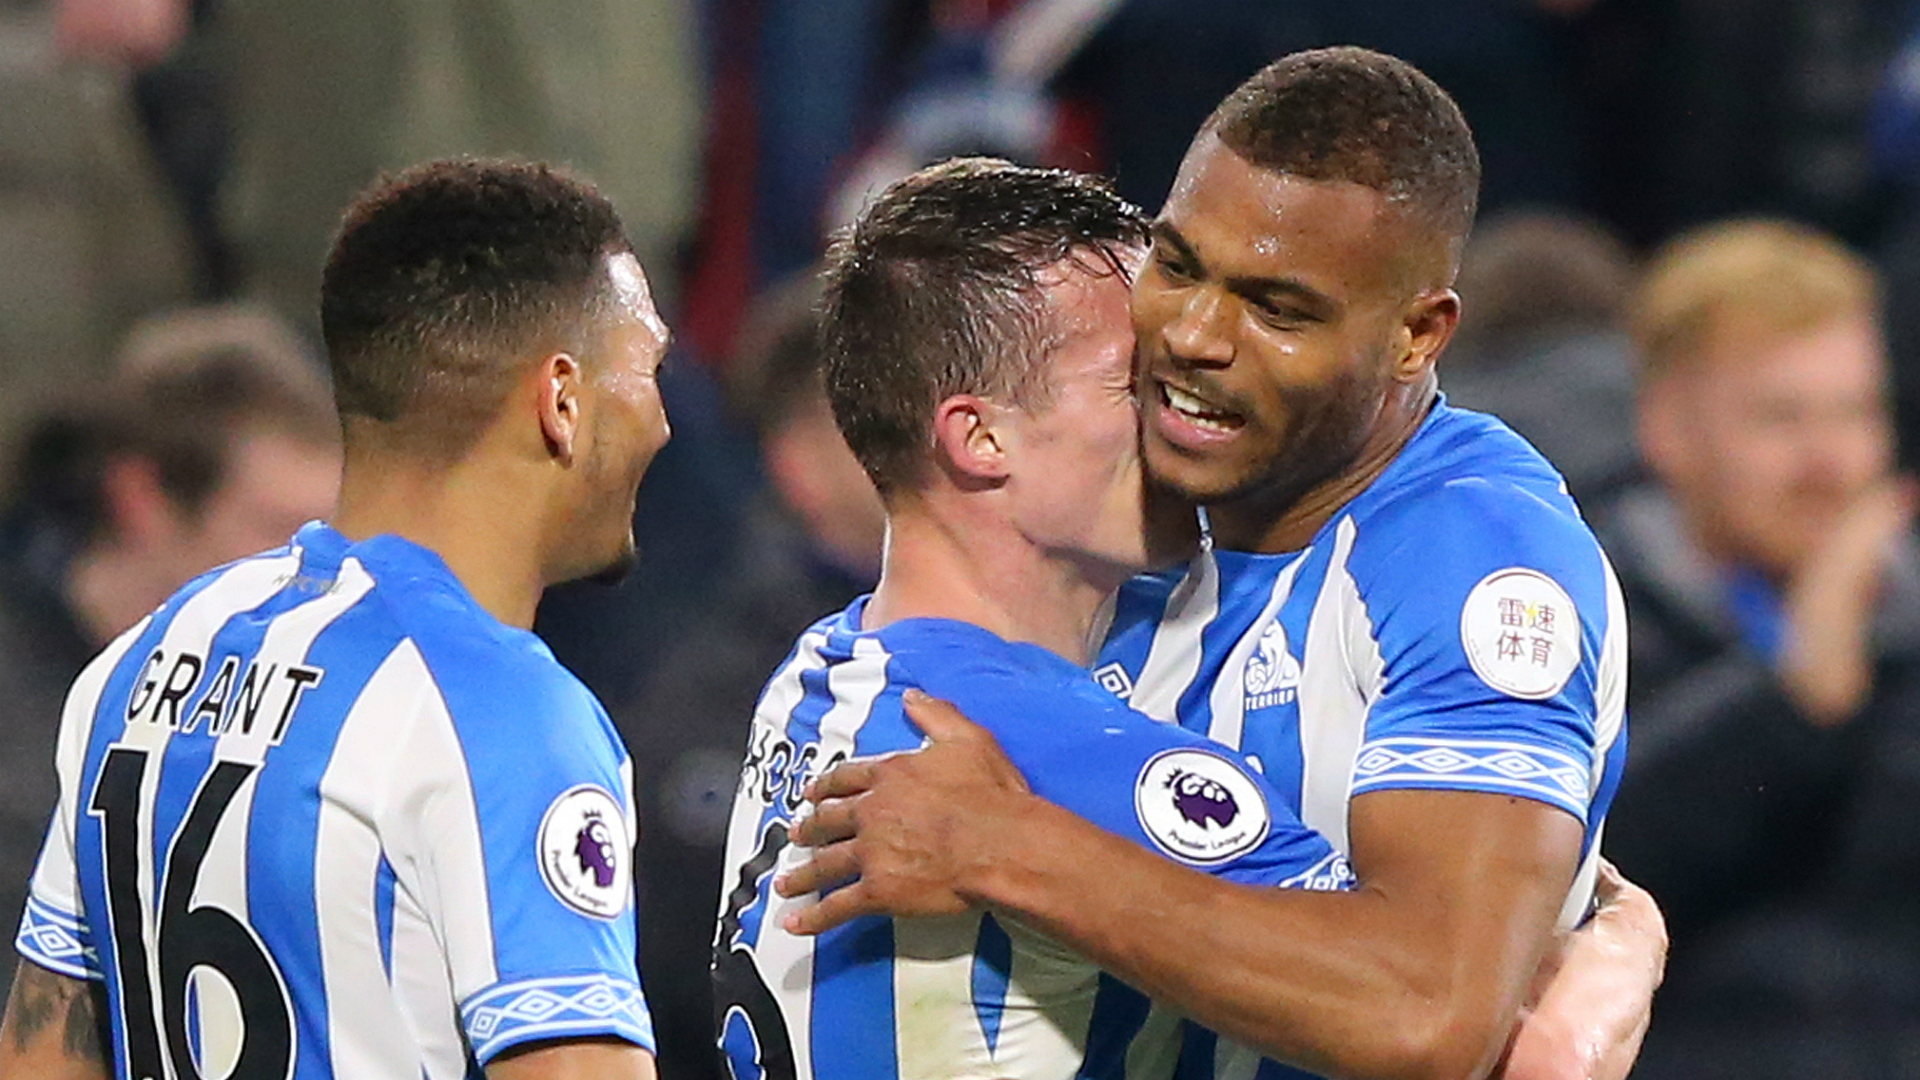 Mounie sends touching message as he leaves Huddersfield for Brest